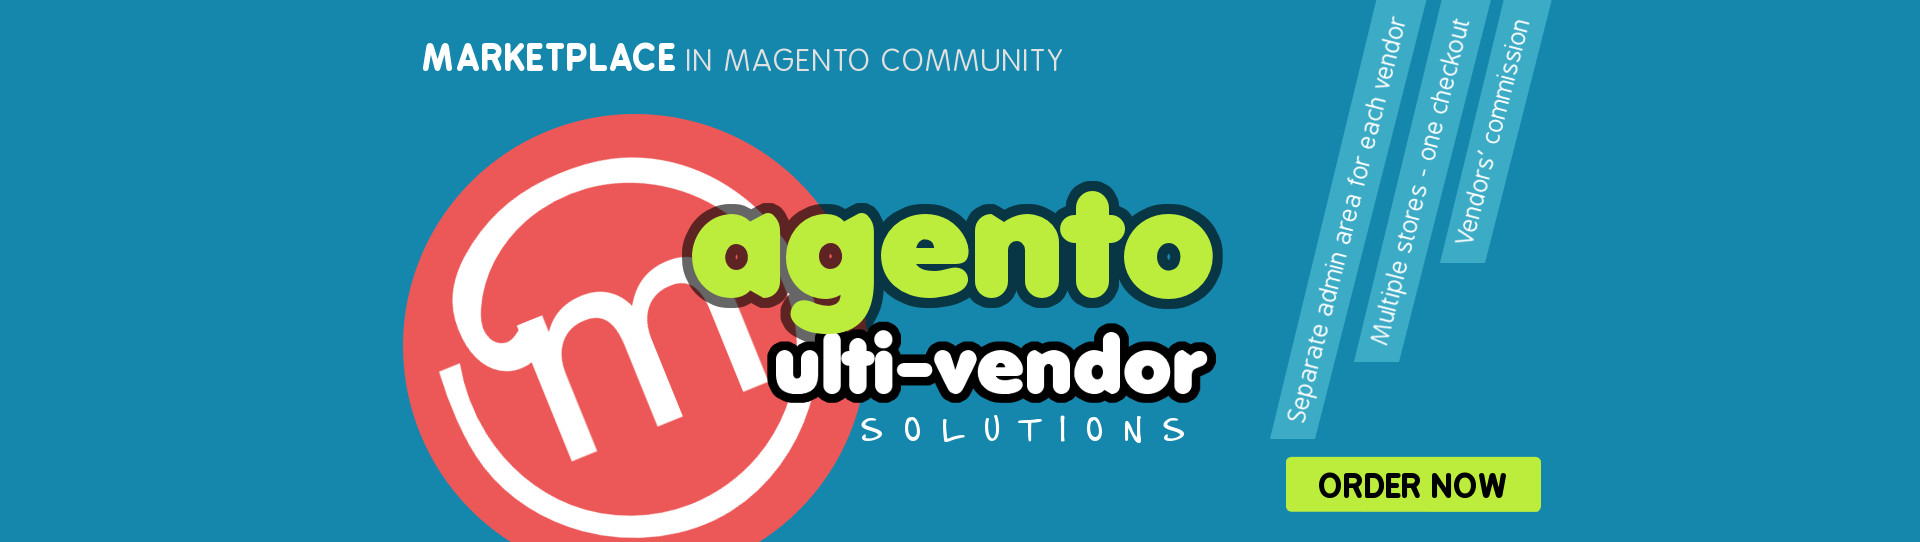 Marketplace In Magento